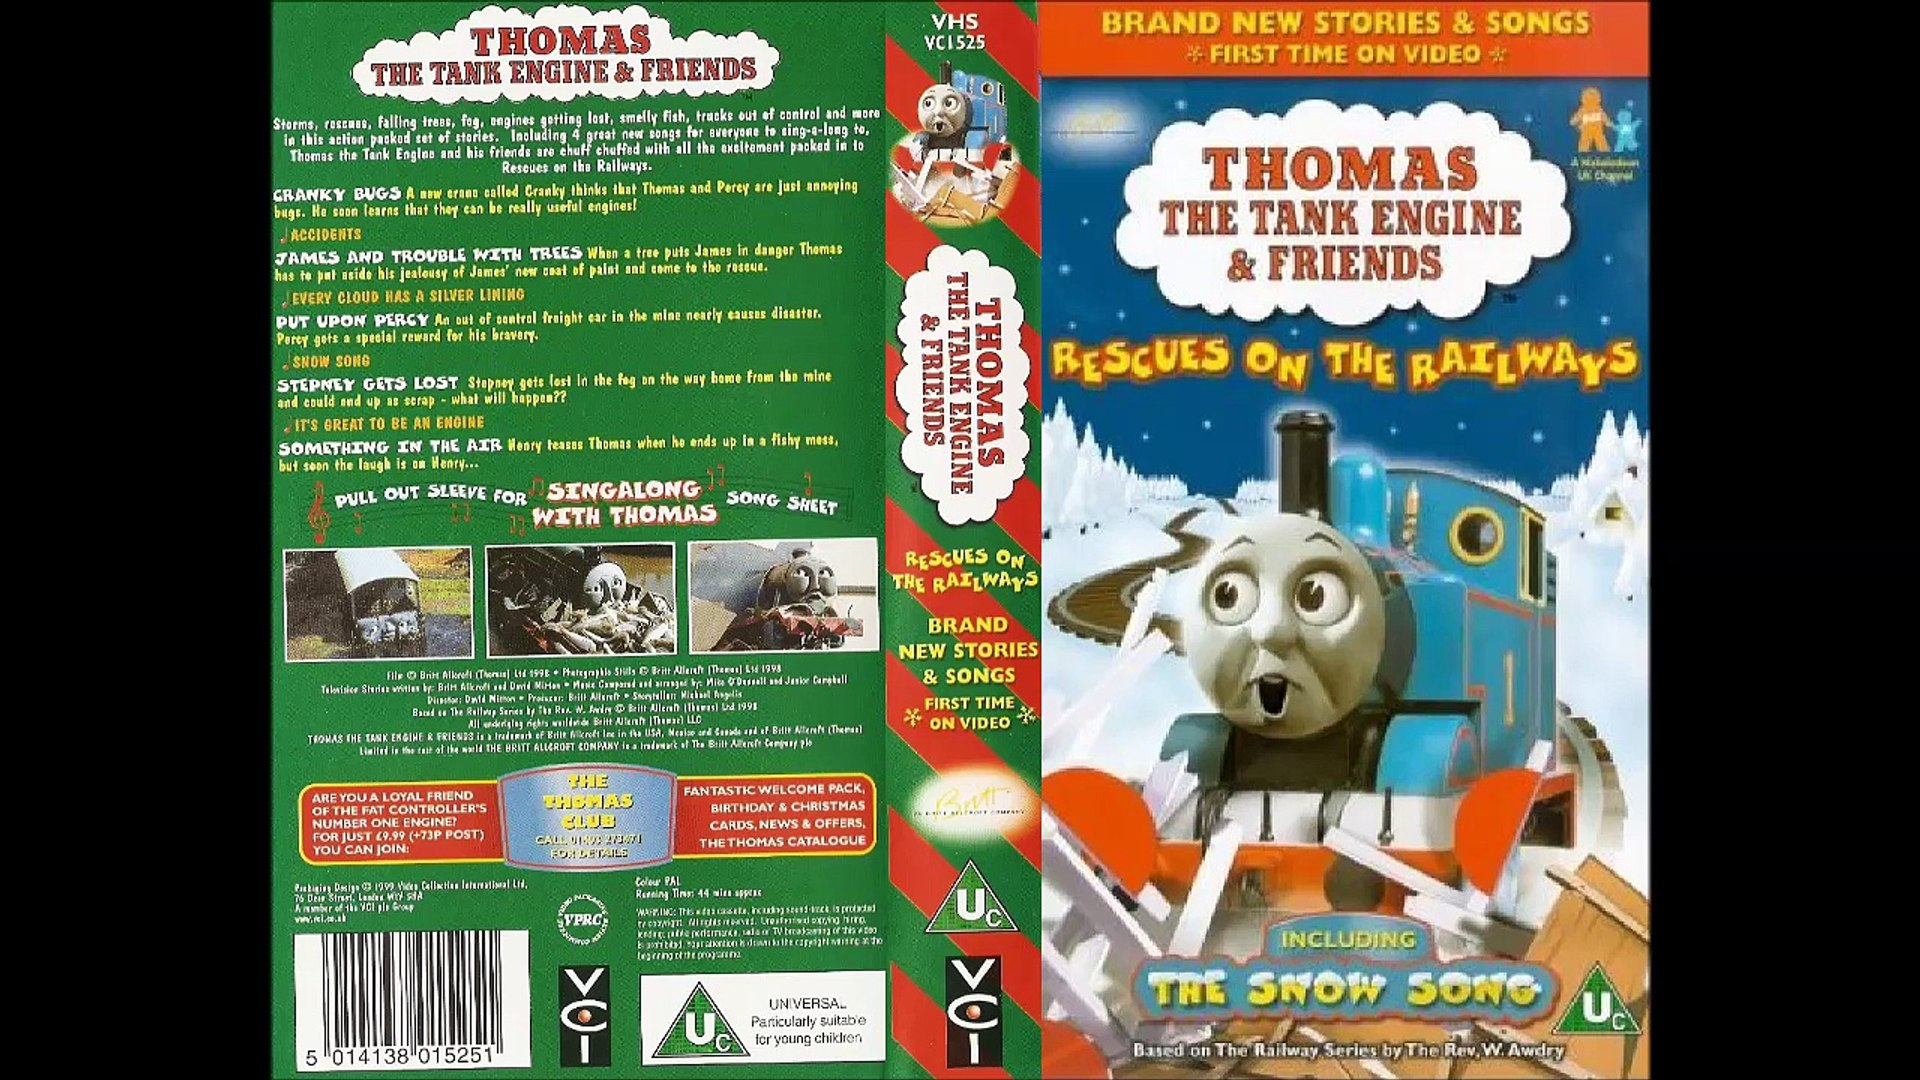 Thomas the Tank Engine & Friends - Rescues on the Railways (1999, UK VHS)